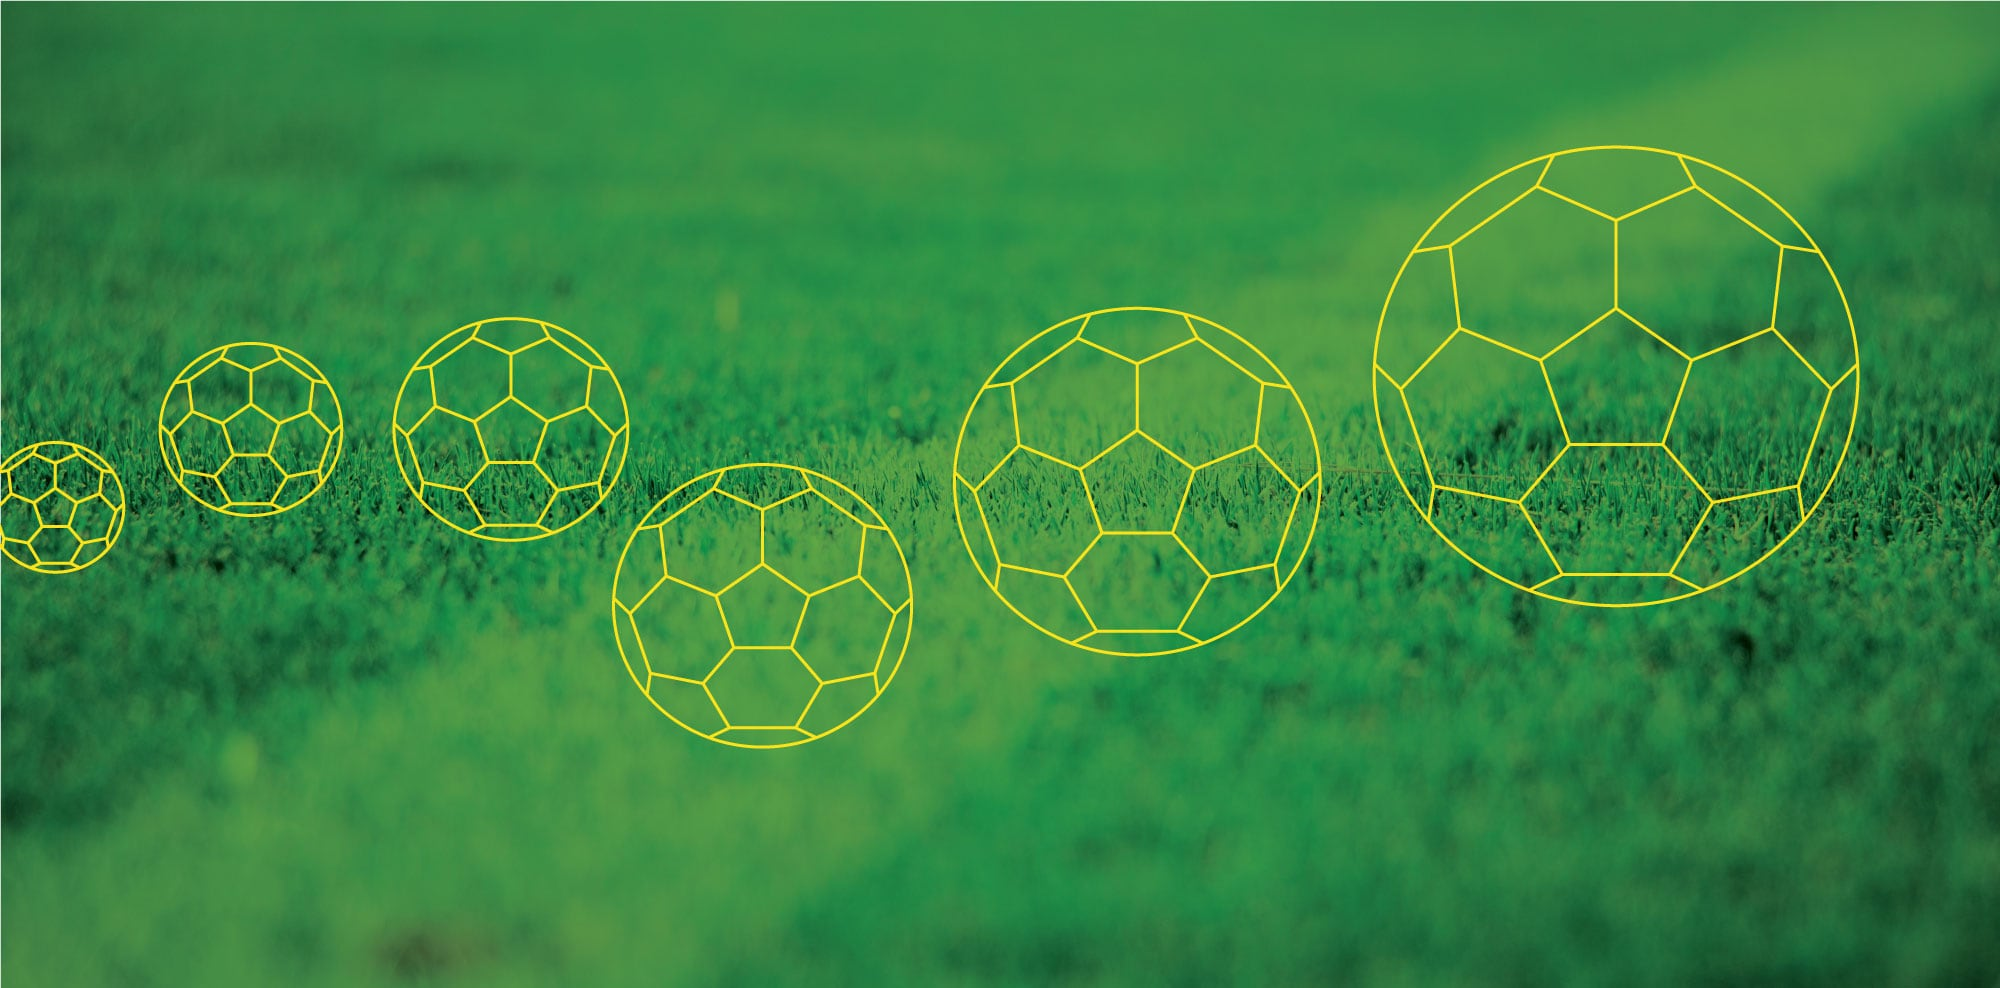 Graphic of soccer balls on background of grass